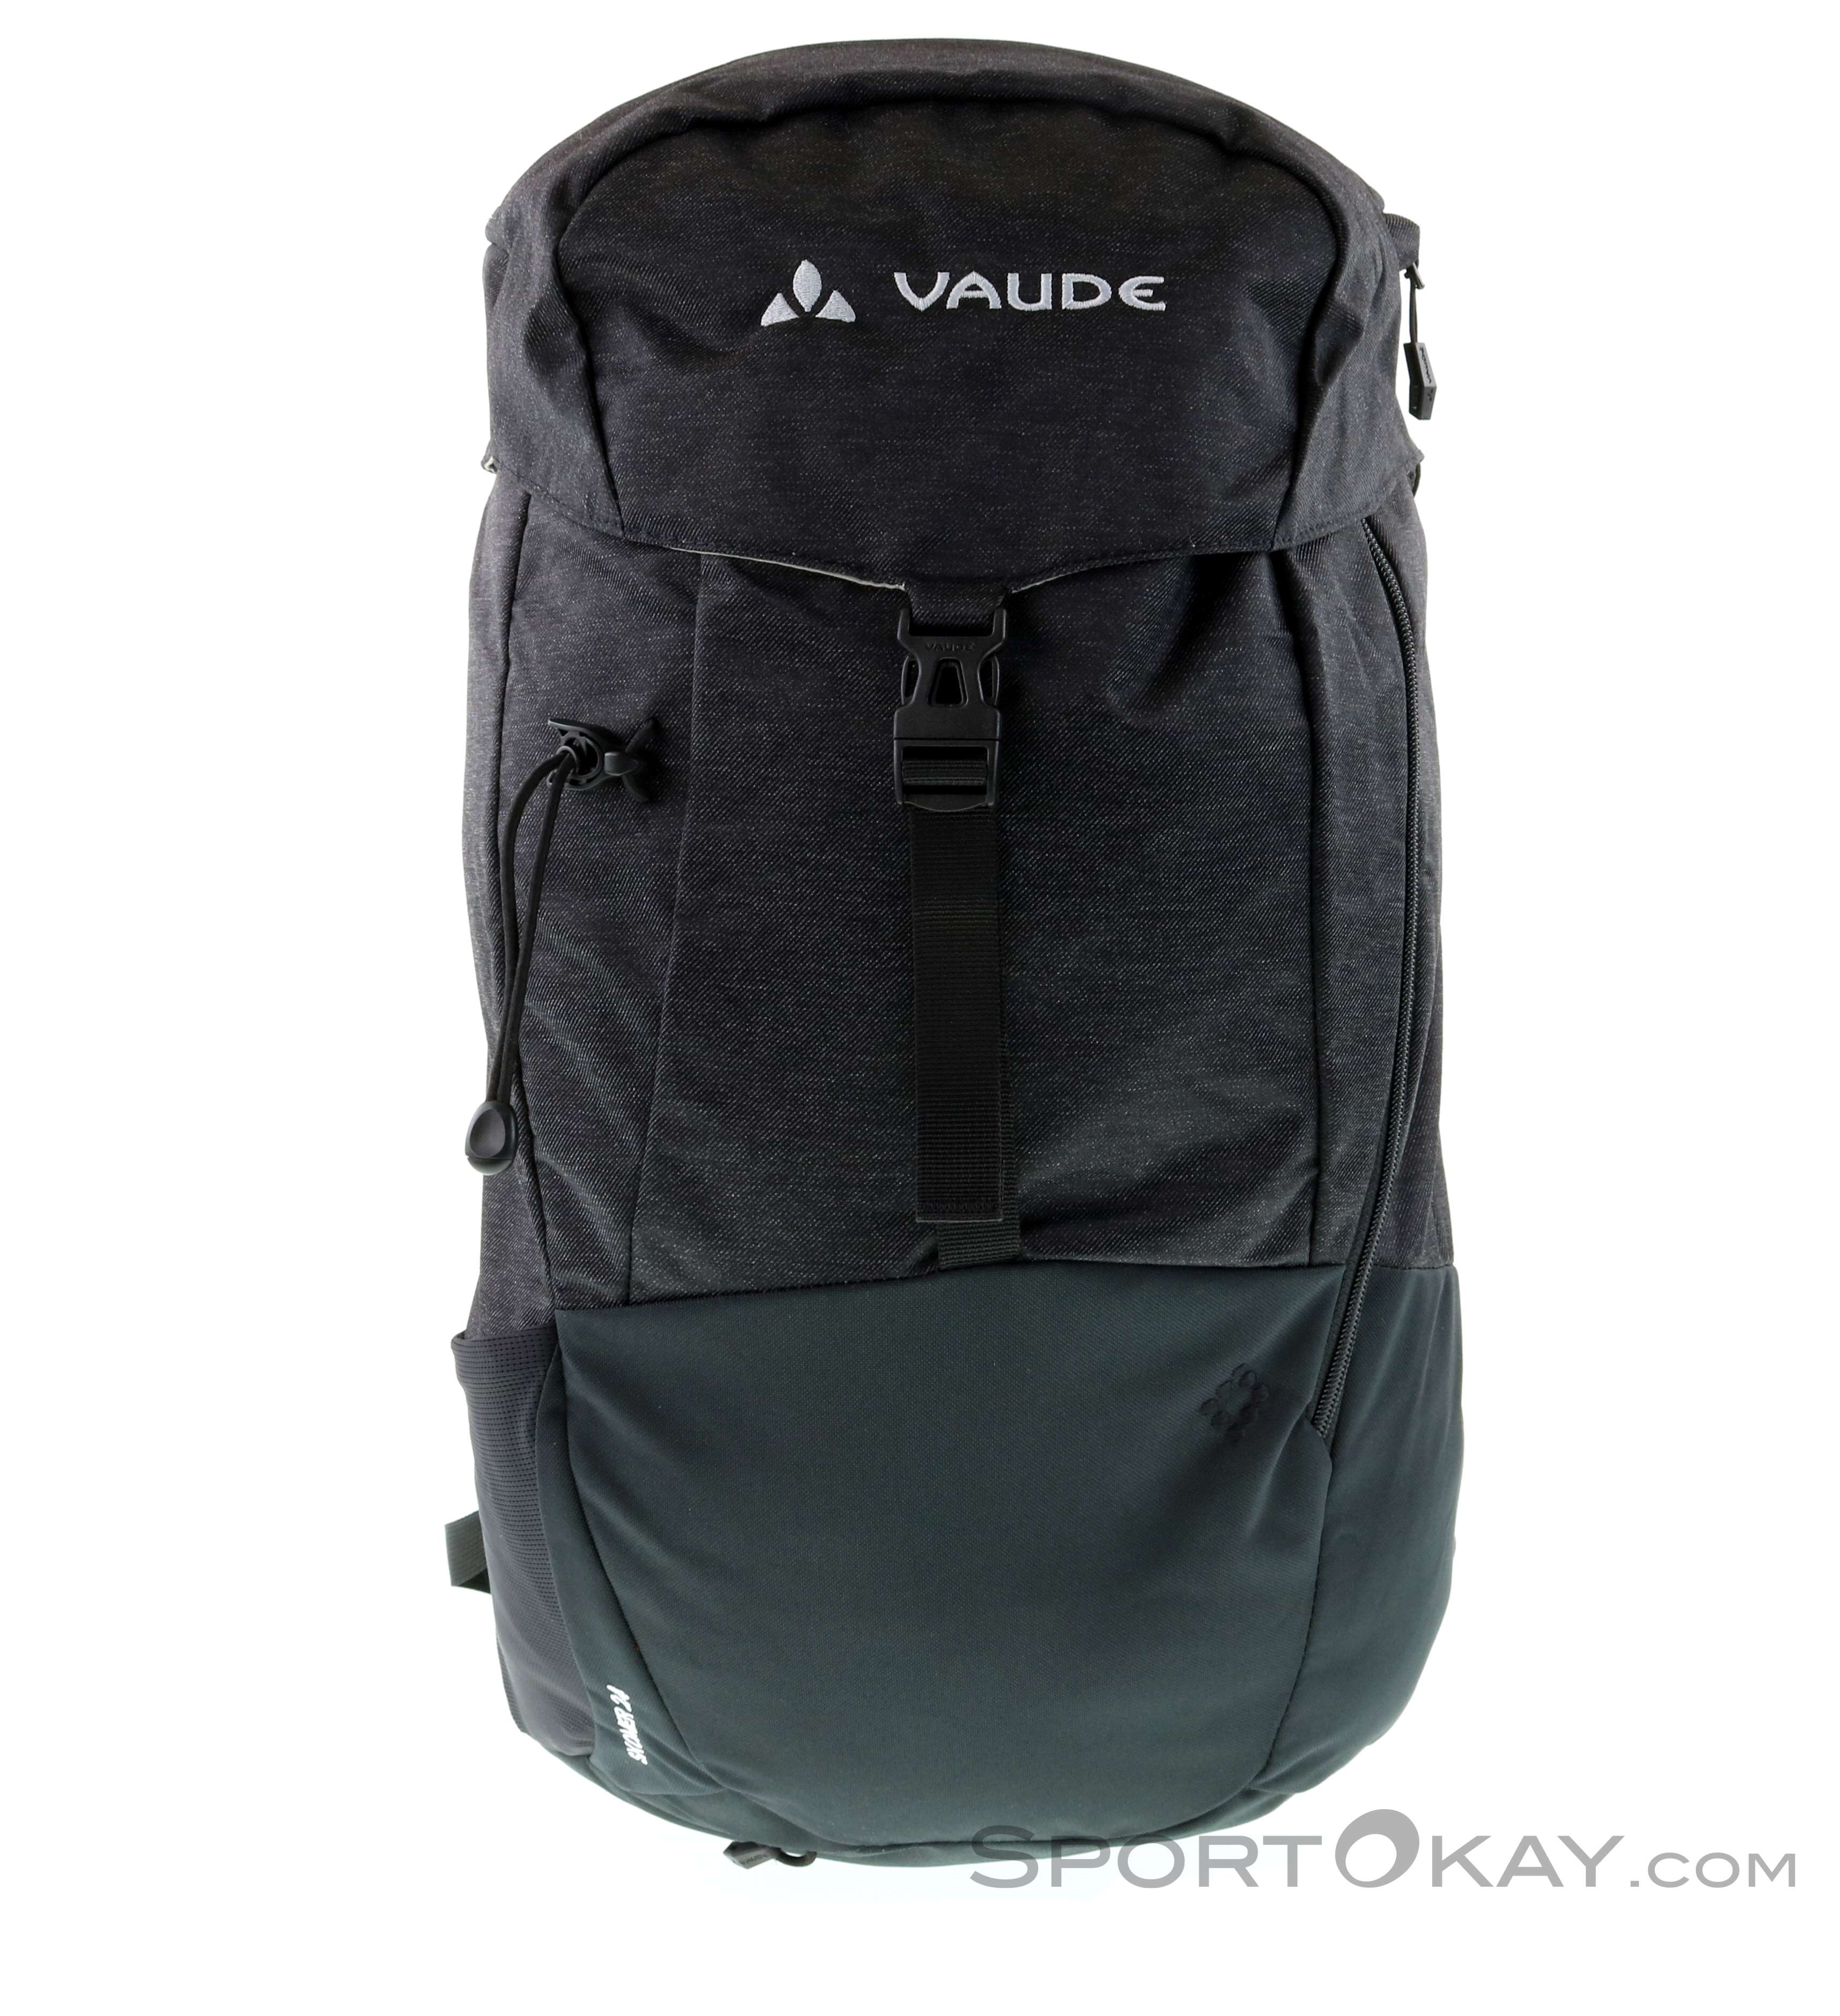 c0f4b06fdc771 Vaude Skomer 24l Womens Backpack - Backpacks - Backpacks   Headlamps ...